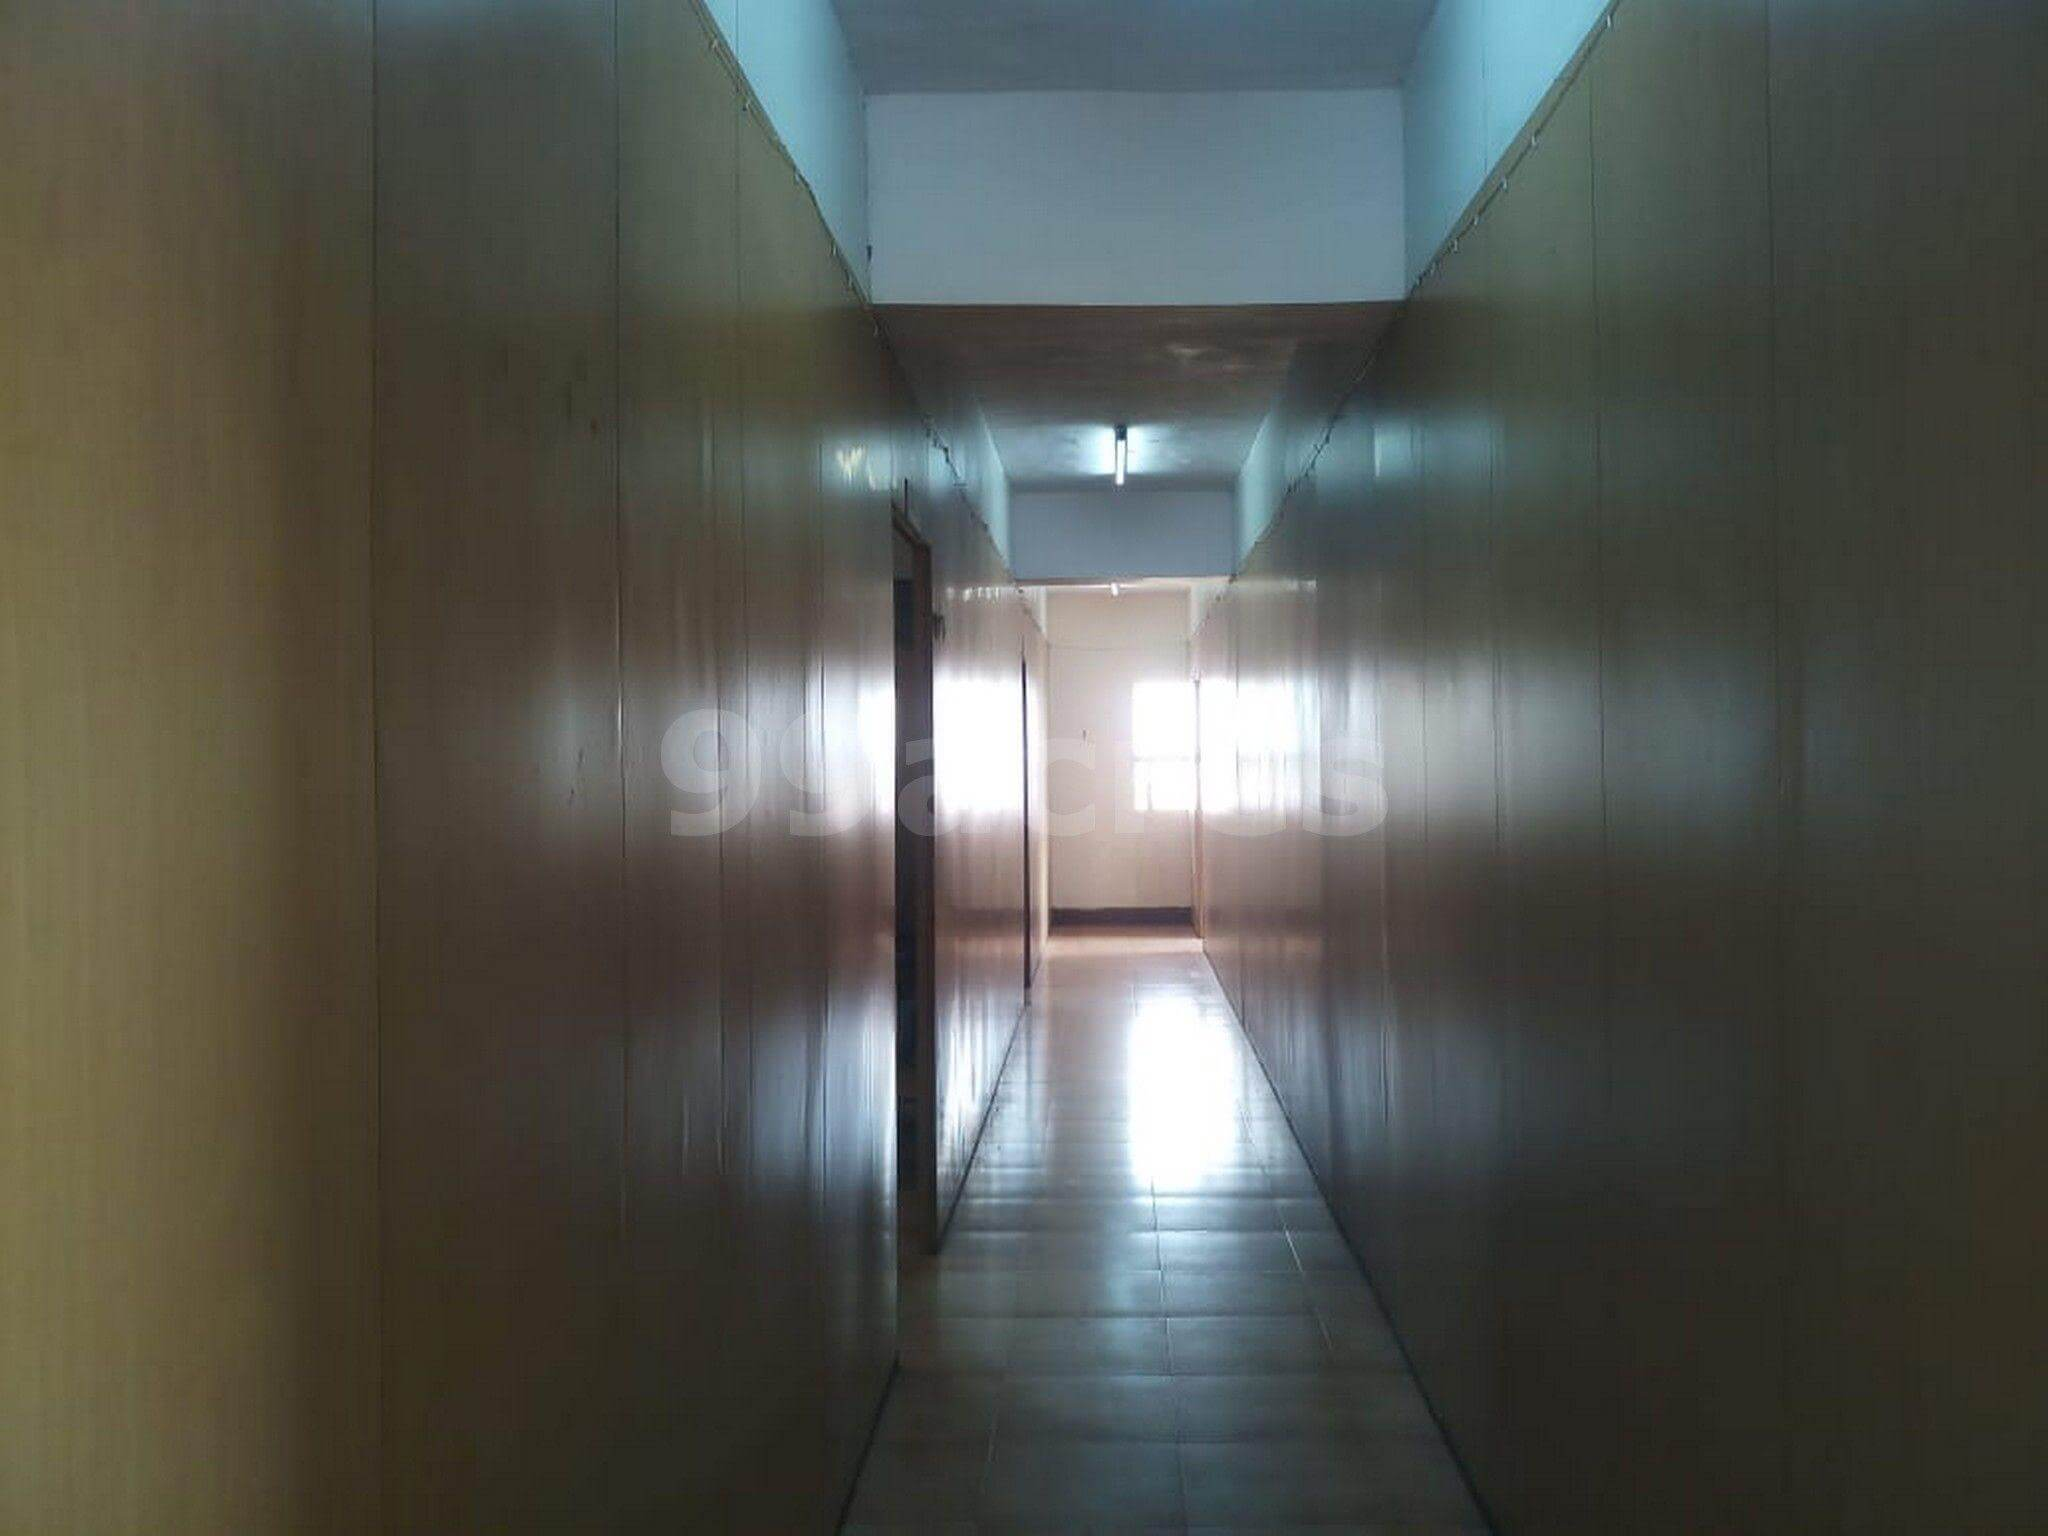 Institutional Plot / Land for Rent 8000 Sq. Feet at Sector-12